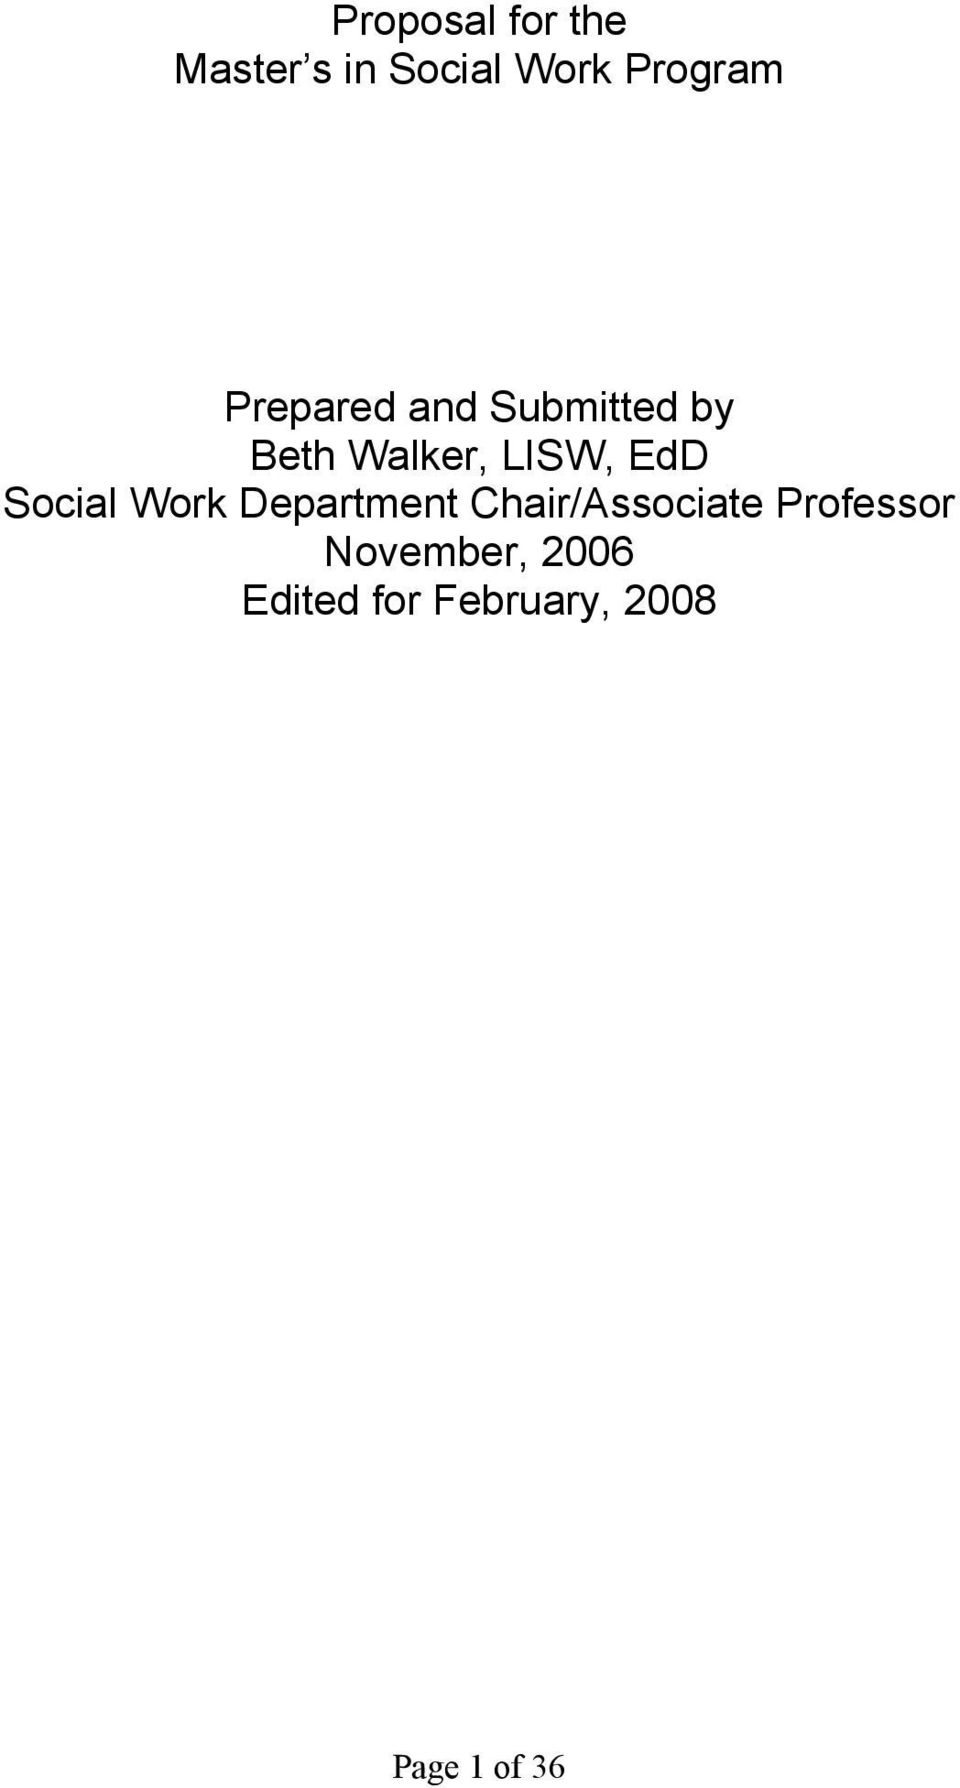 Social Work Department Chair/Associate Professor